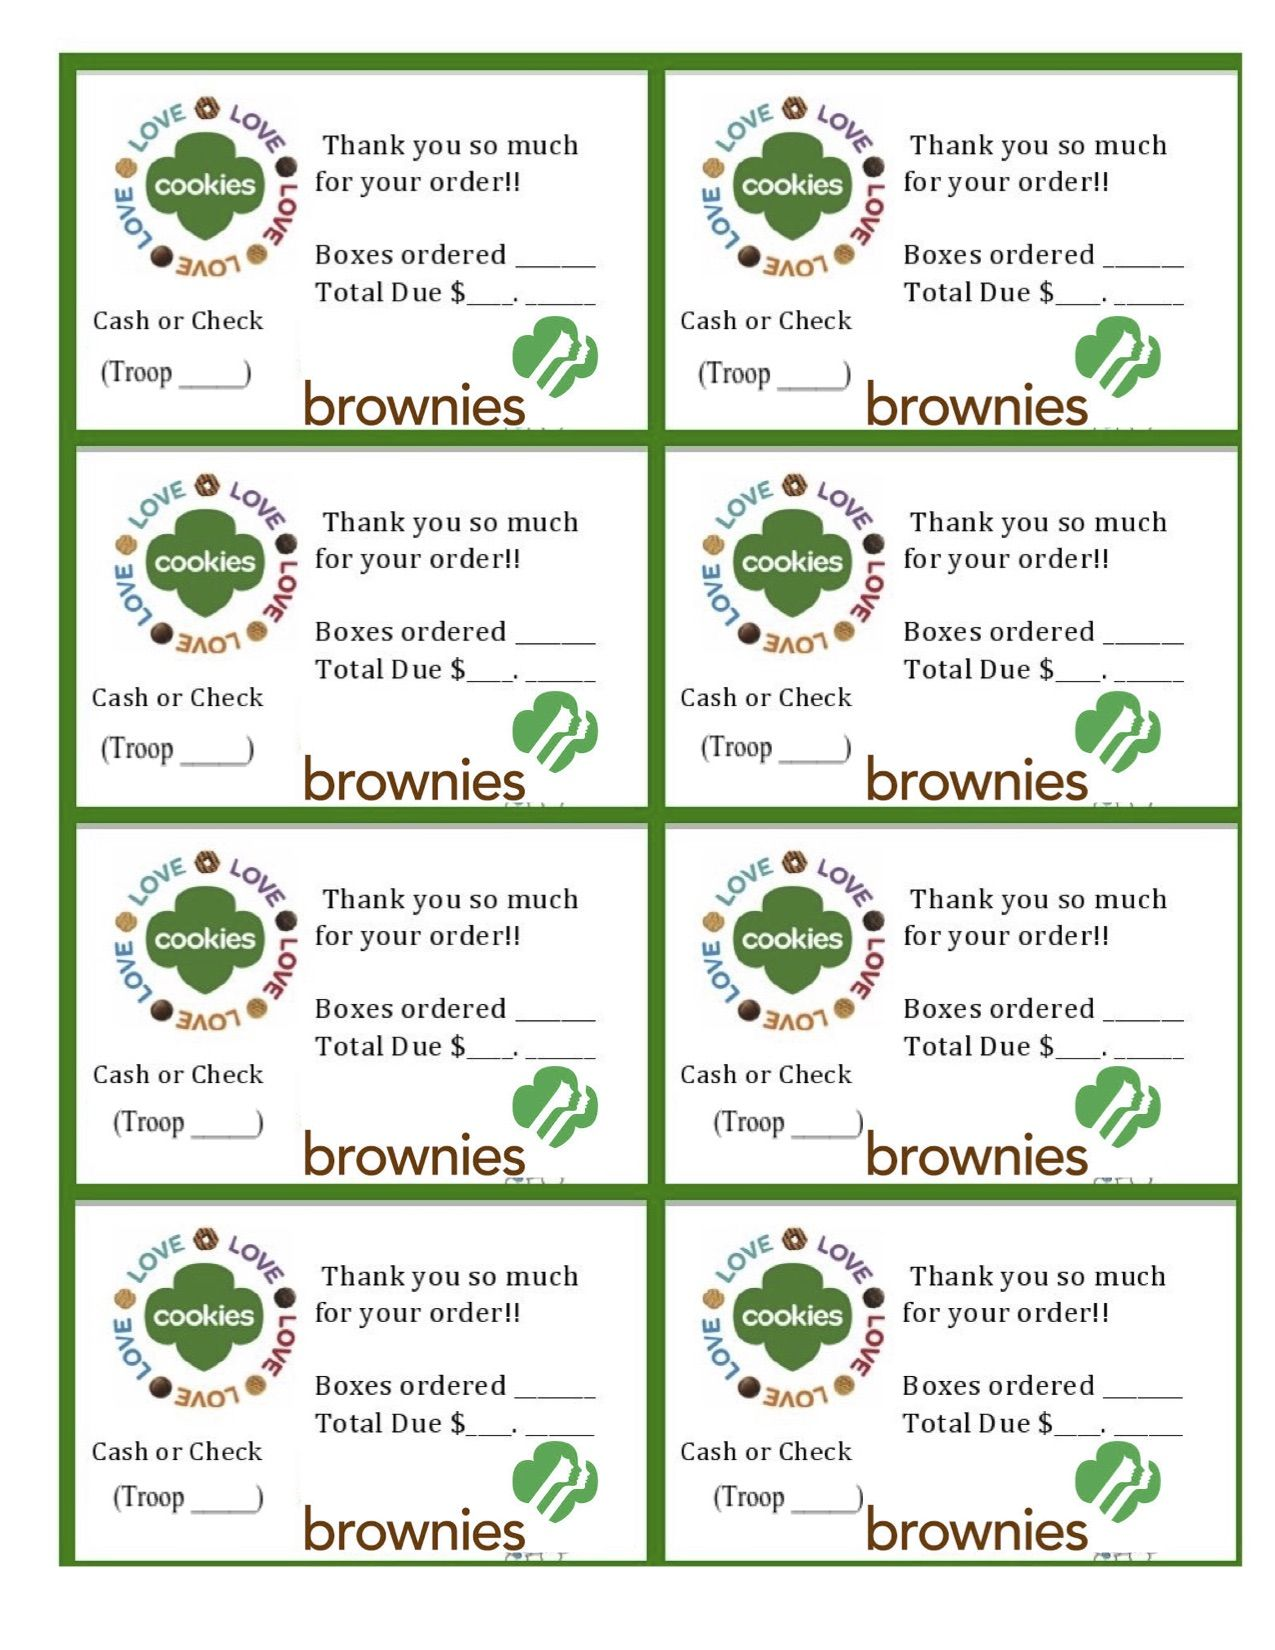 Printable Brownie Girl Scouts Cookie Sales Invoice And Thank You Card 8 Per Sheet Just Downl Girl Scout Activities Girl Scout Cookie Sales Girl Scout Cookies